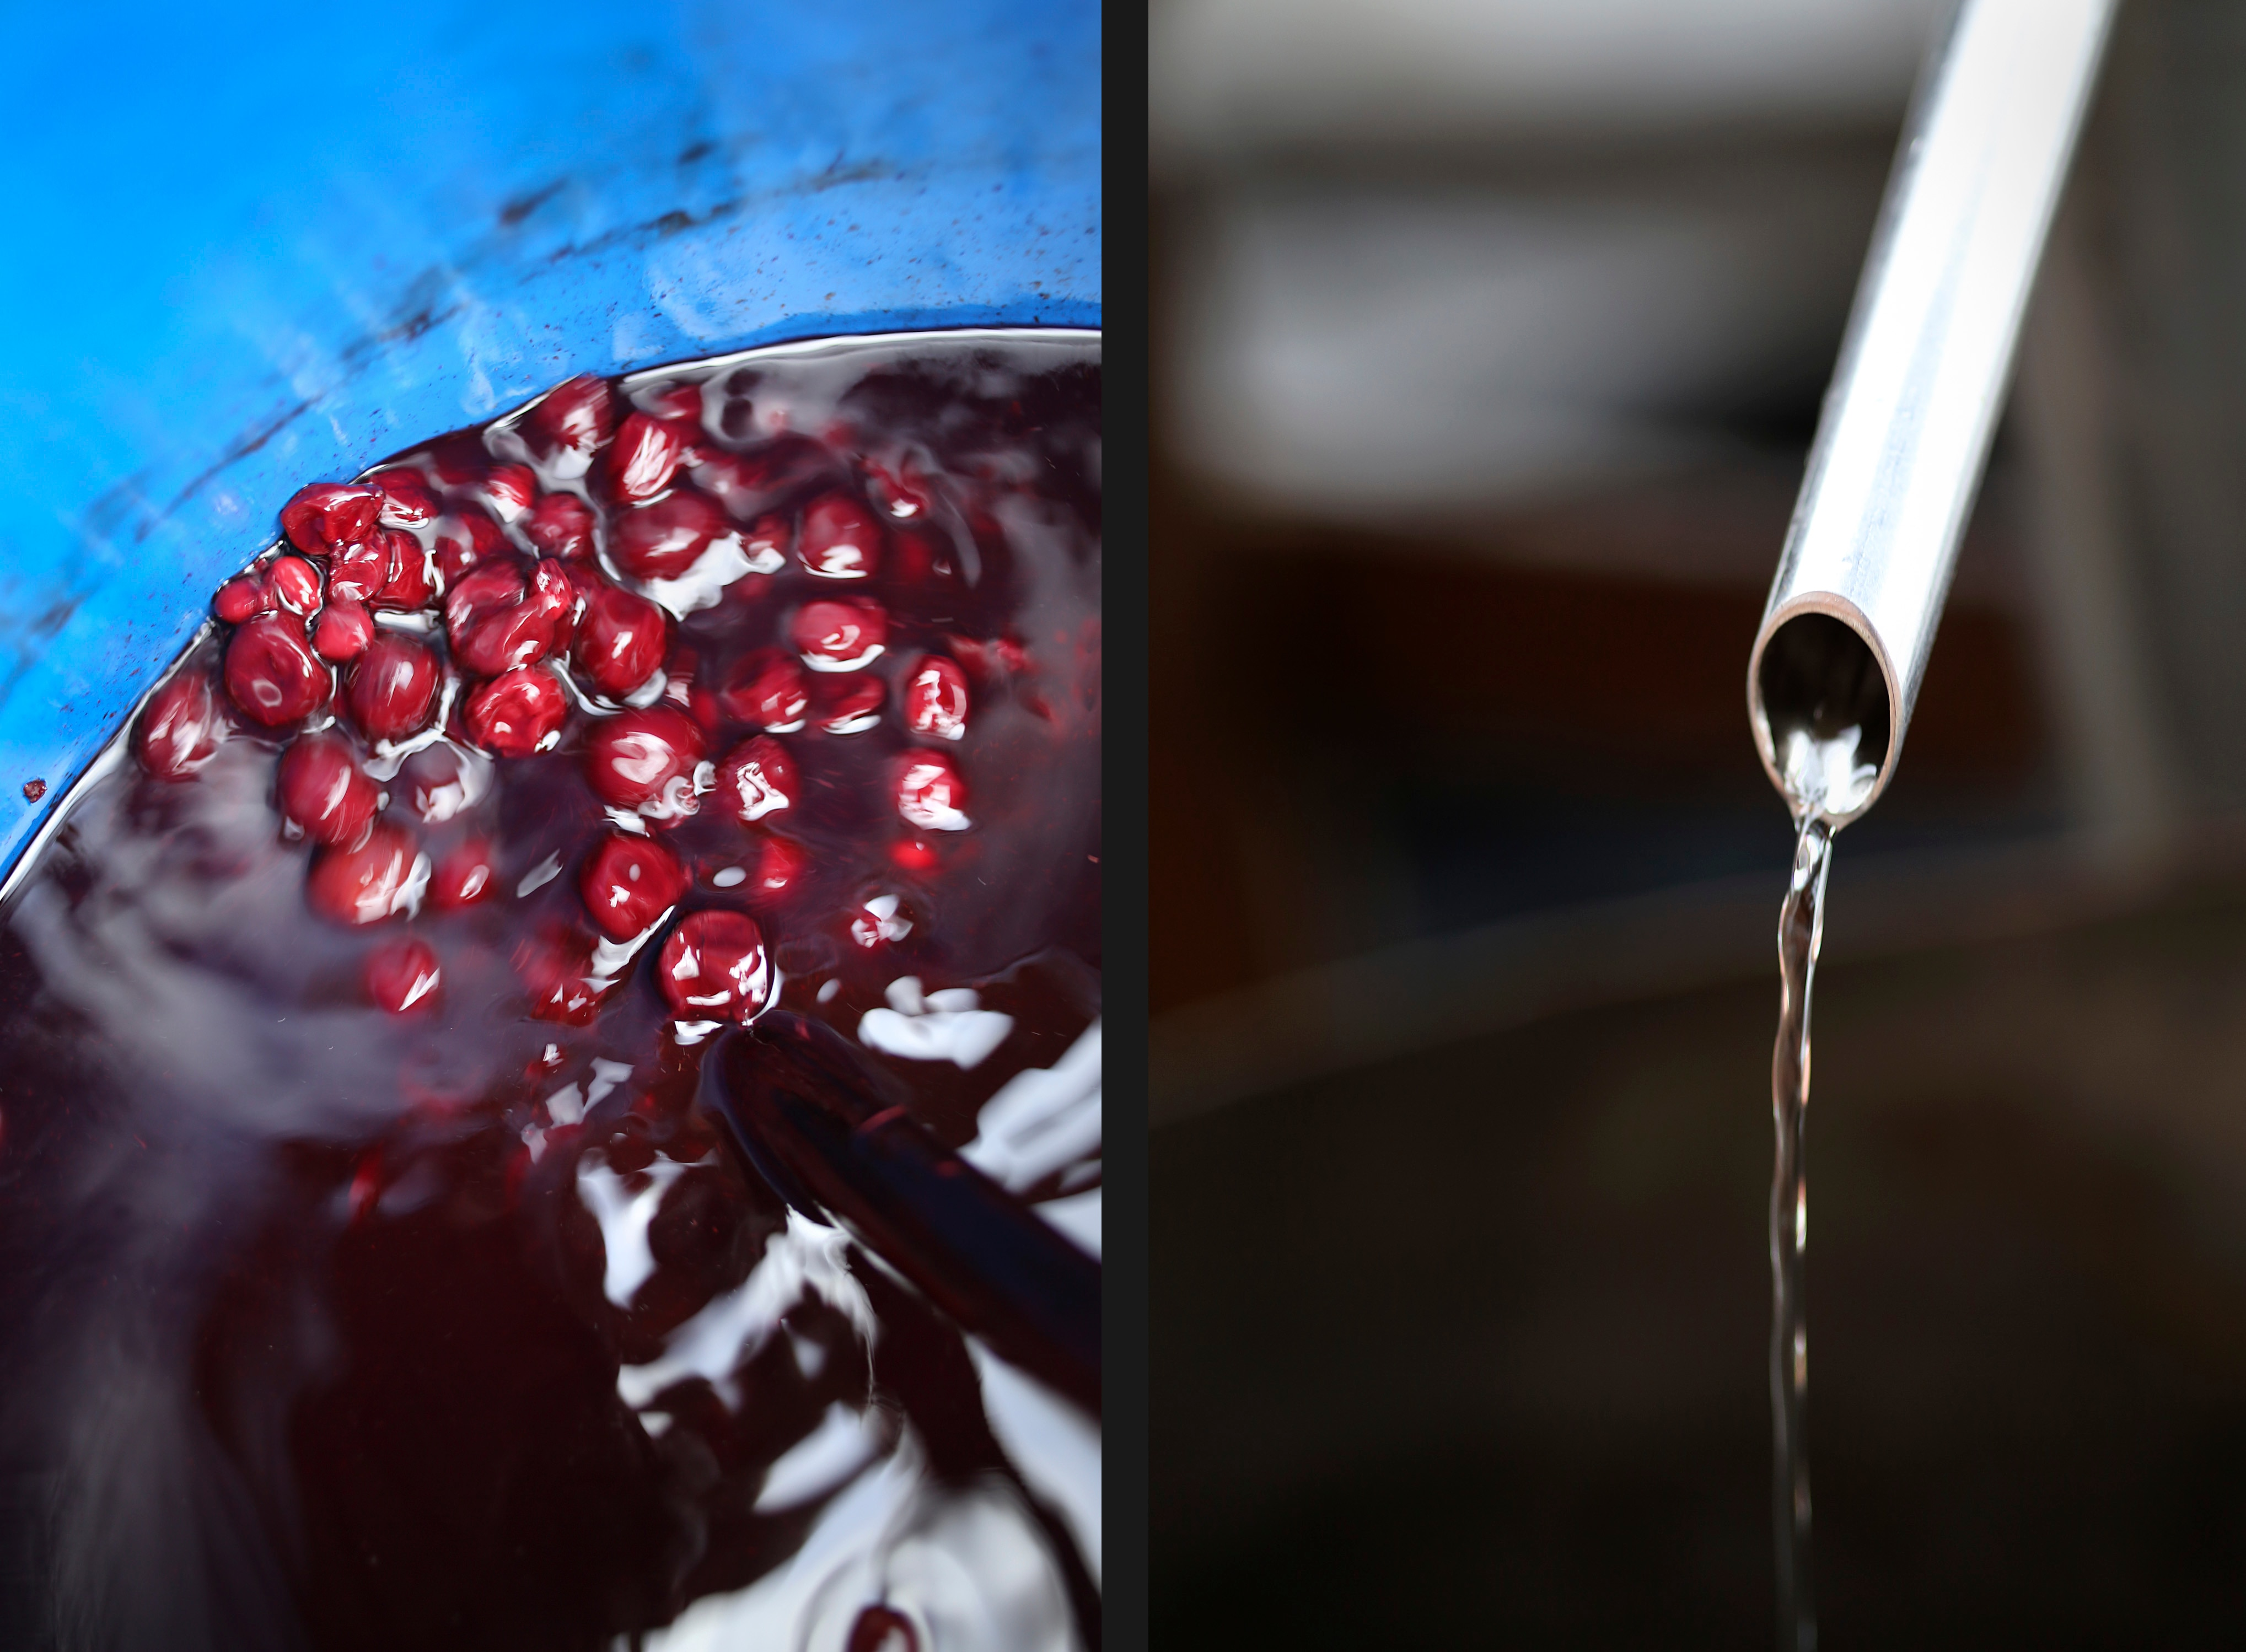 Fermented cherries in a barrel before the distillation process (left), and what comes out at the end (right)